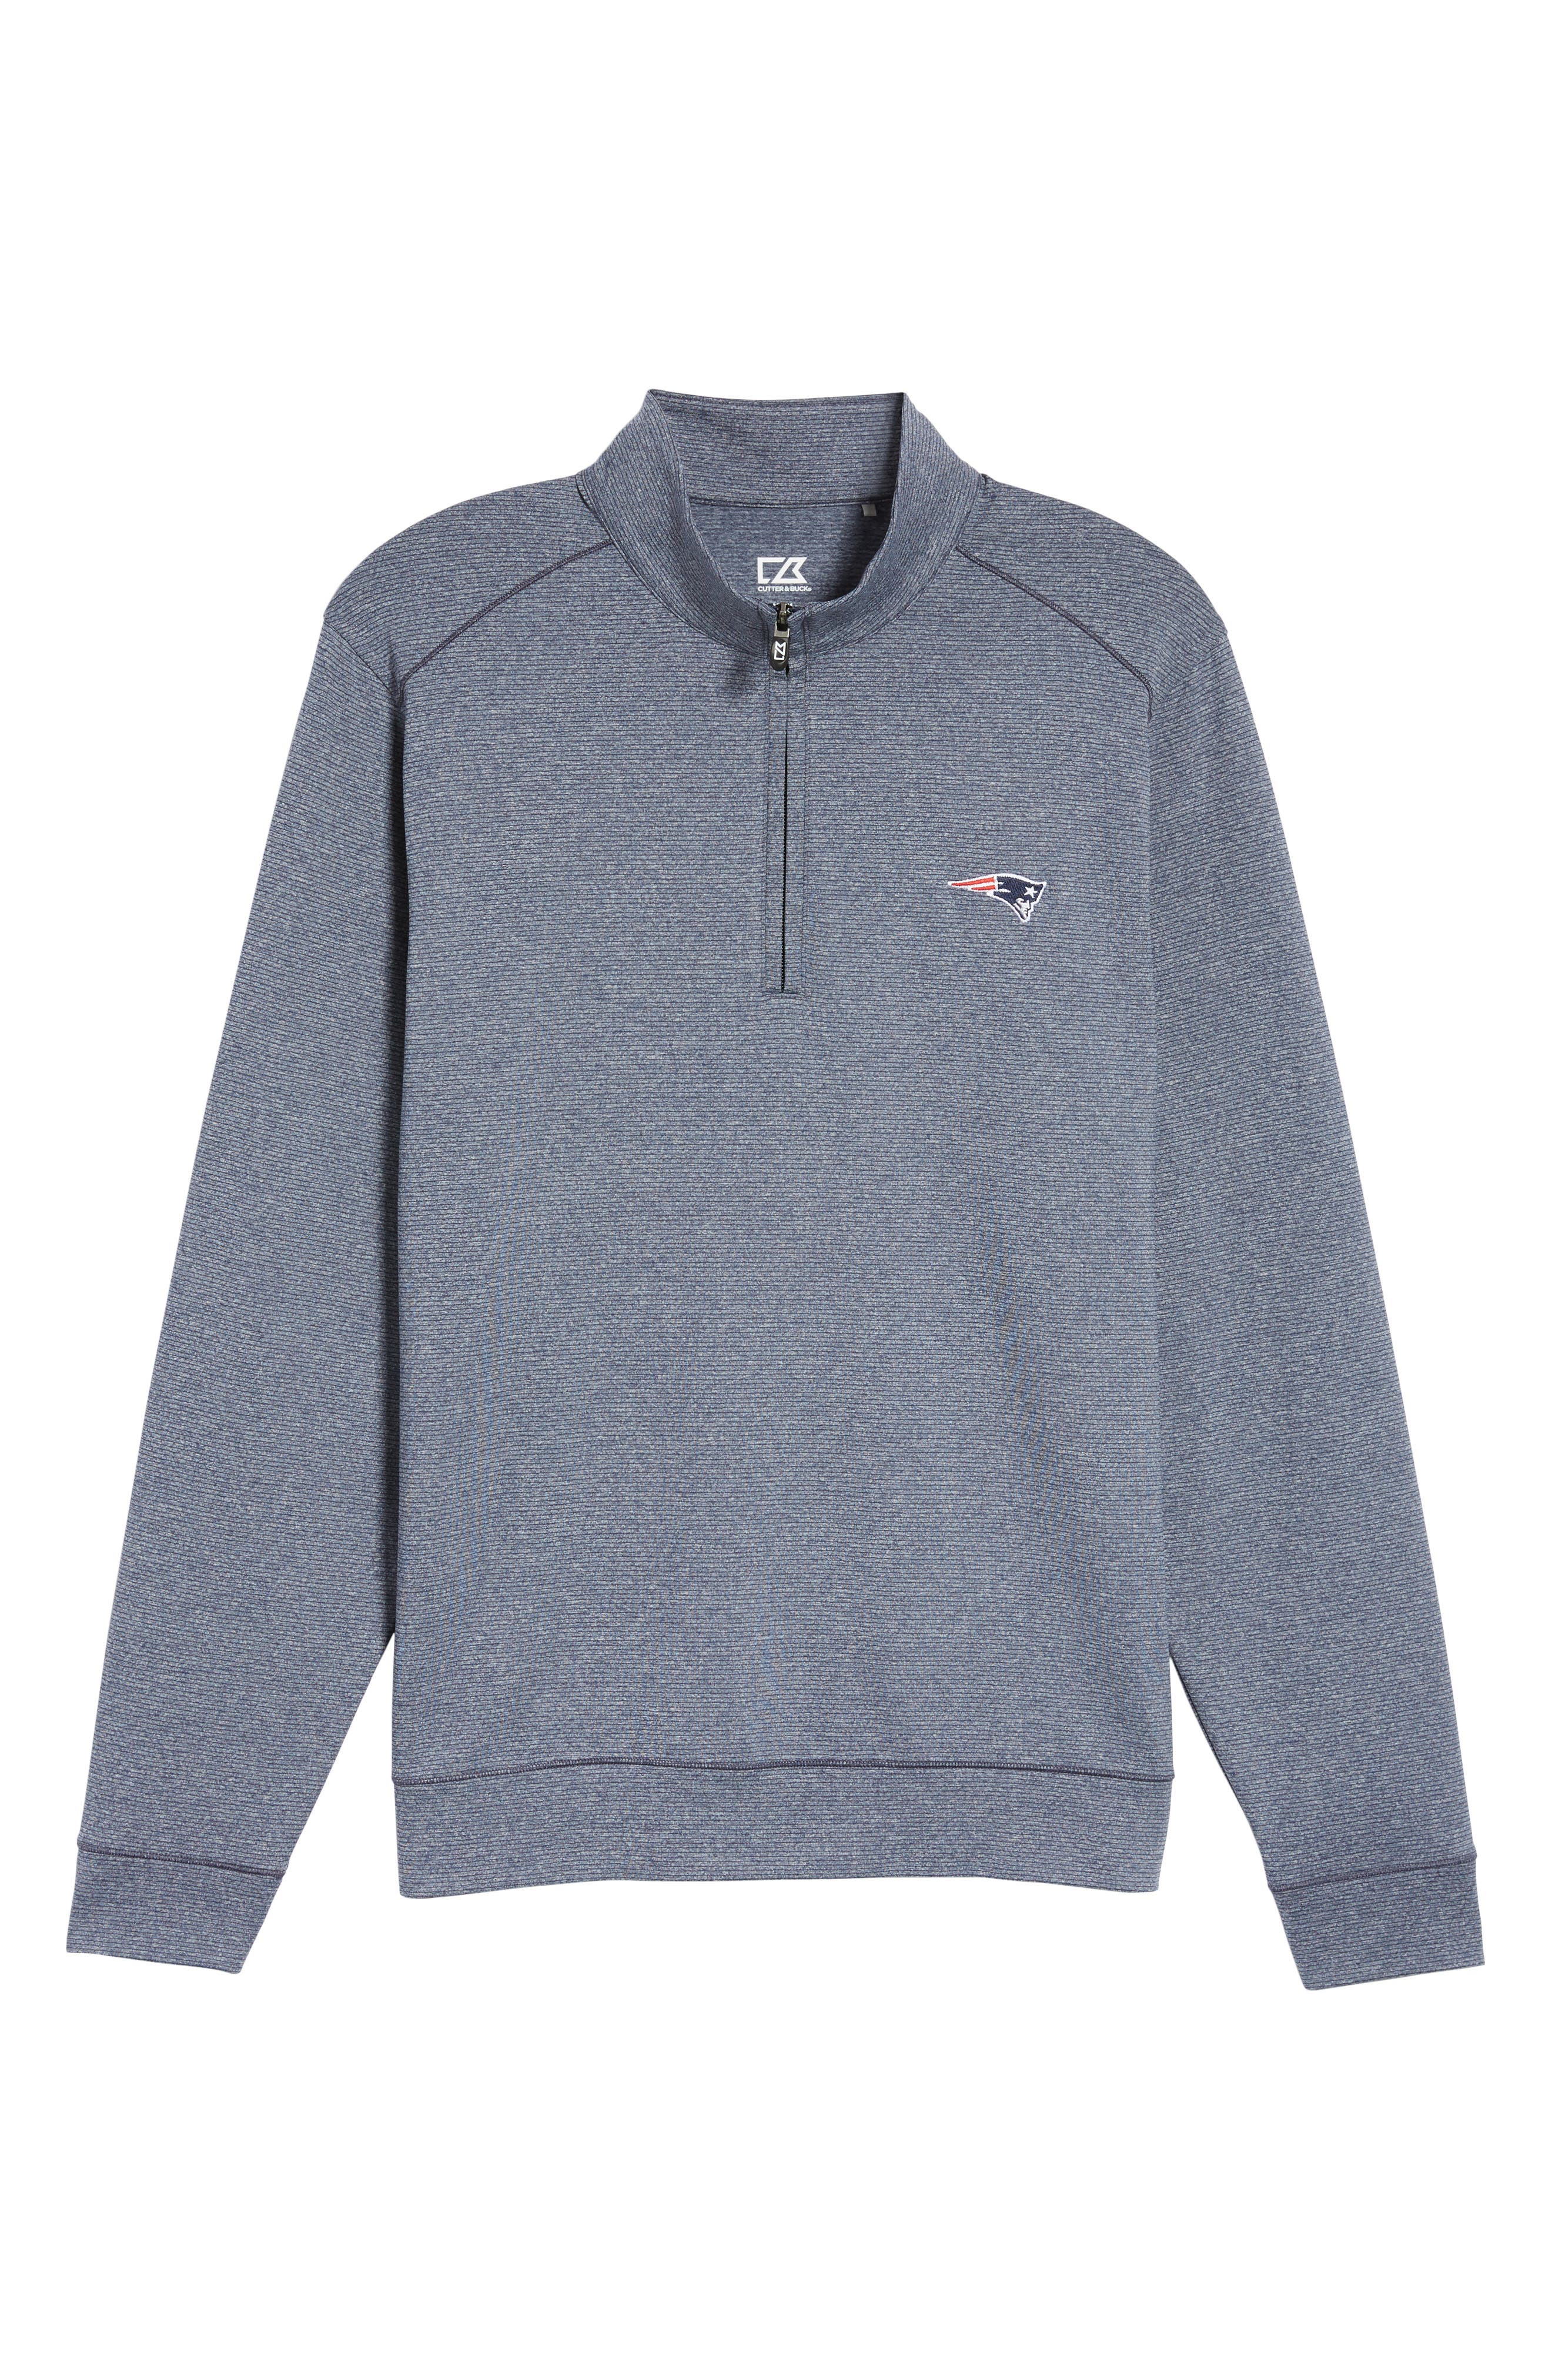 Shoreline - New England Patriots Half Zip Pullover,                             Alternate thumbnail 6, color,                             976